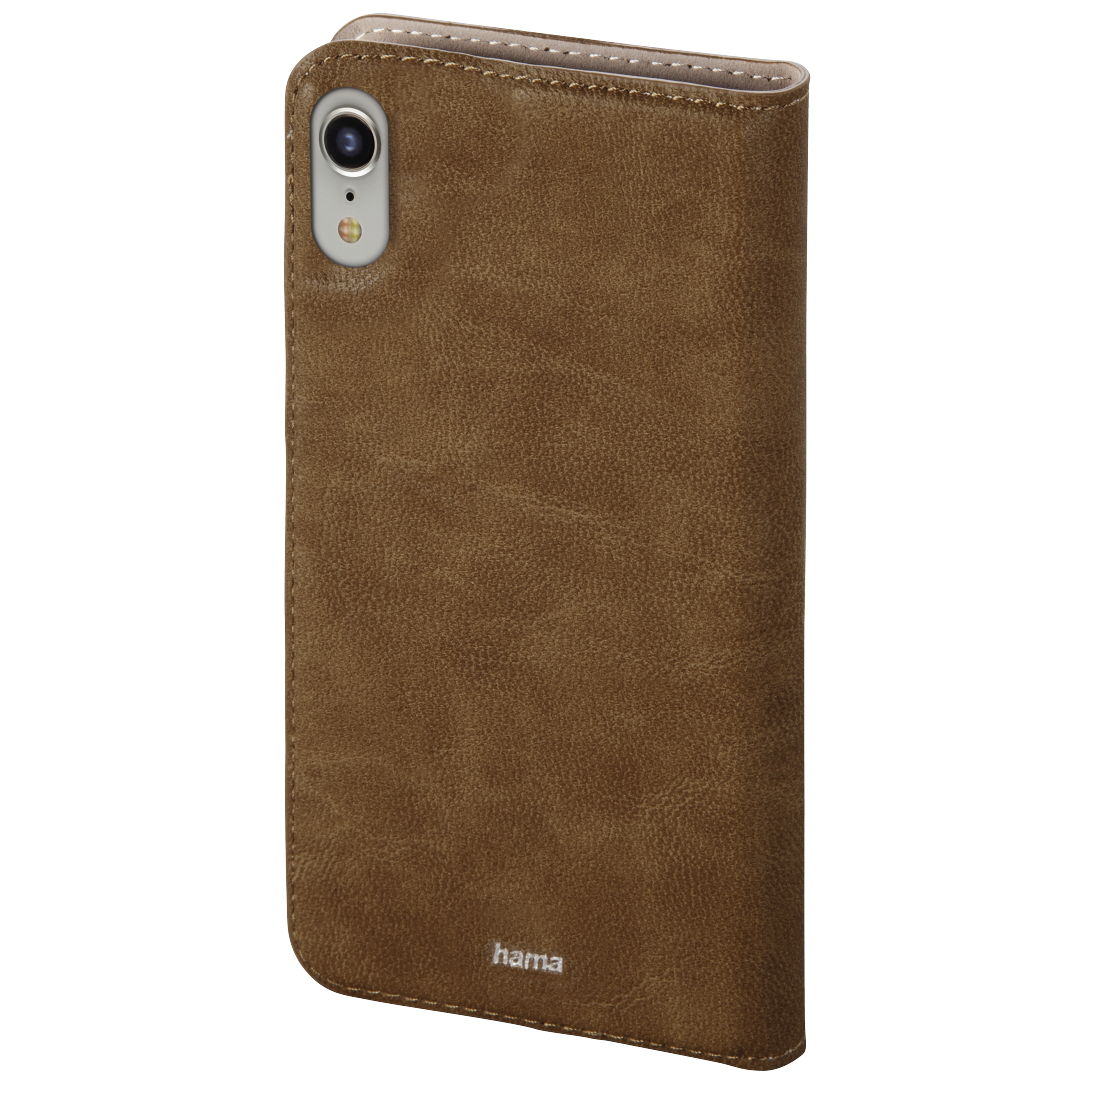 abx2 High-Res Image 2 - Hama, Guard Case booklet for Apple iPhone XR, brown